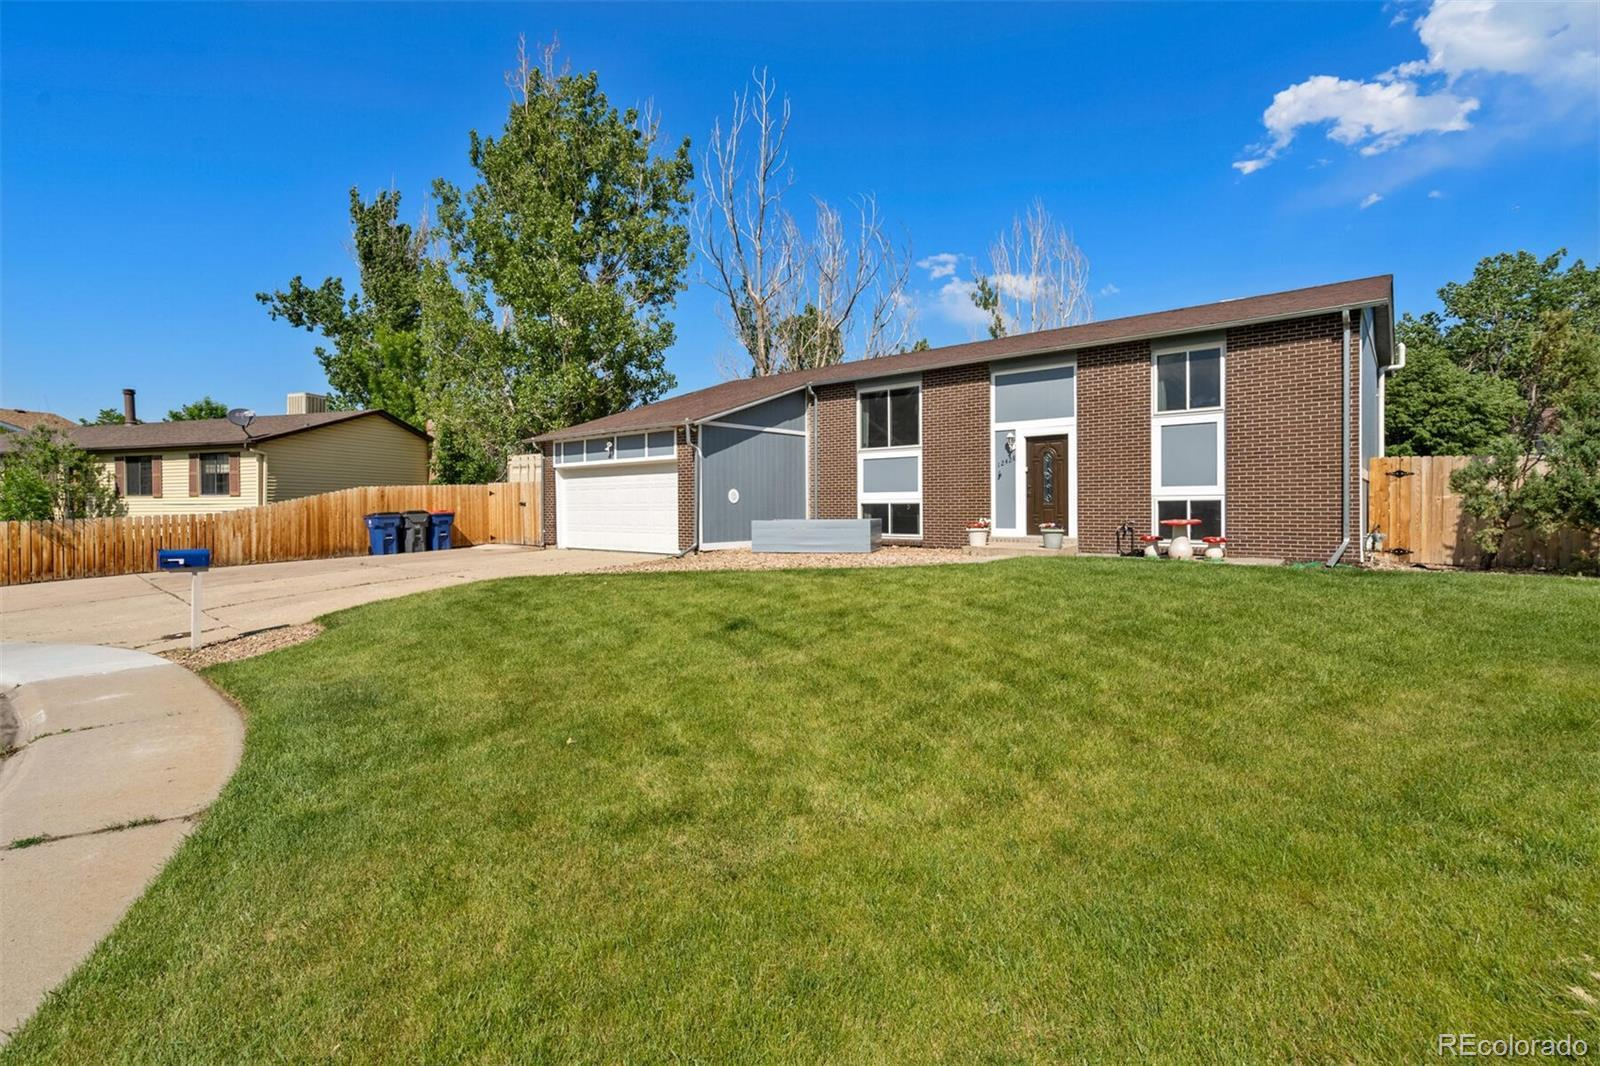 12428 W 70th Place, Arvada, CO 80004 - #: 3350403